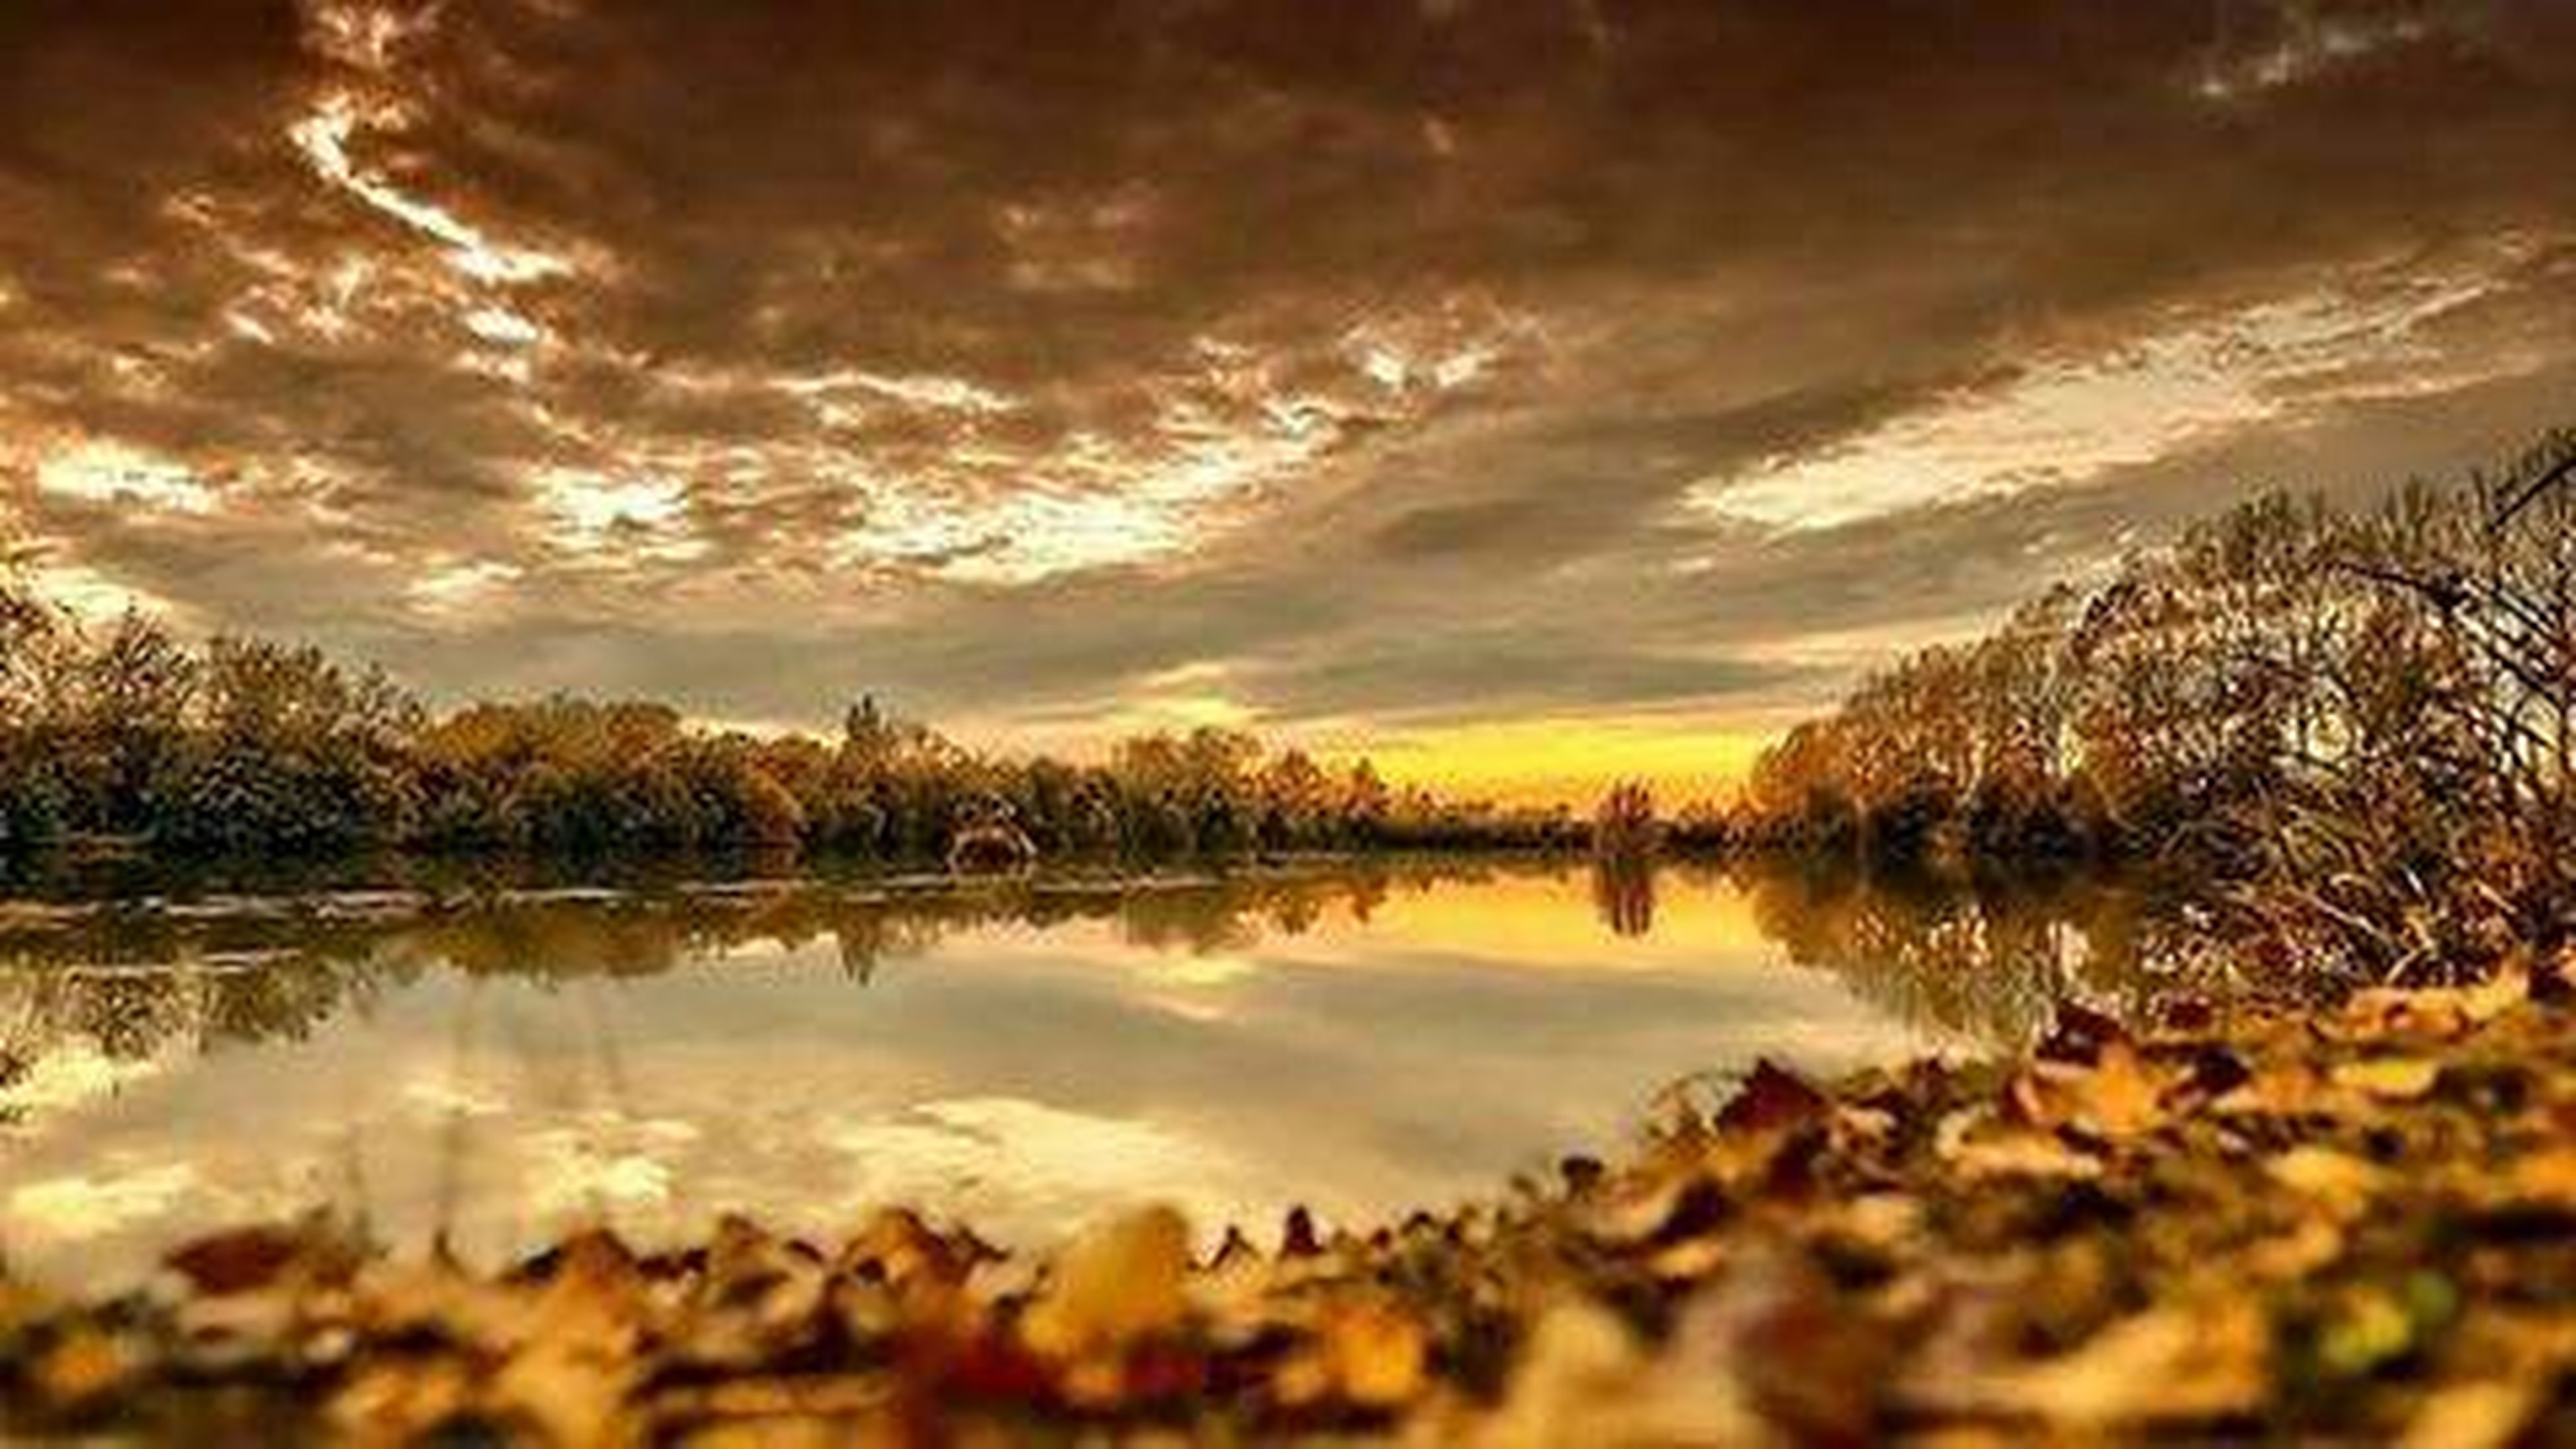 reflection, tranquil scene, tranquility, lake, sky, scenics, sunset, water, beauty in nature, cloud - sky, nature, tree, idyllic, cloud, standing water, non-urban scene, cloudy, calm, landscape, outdoors